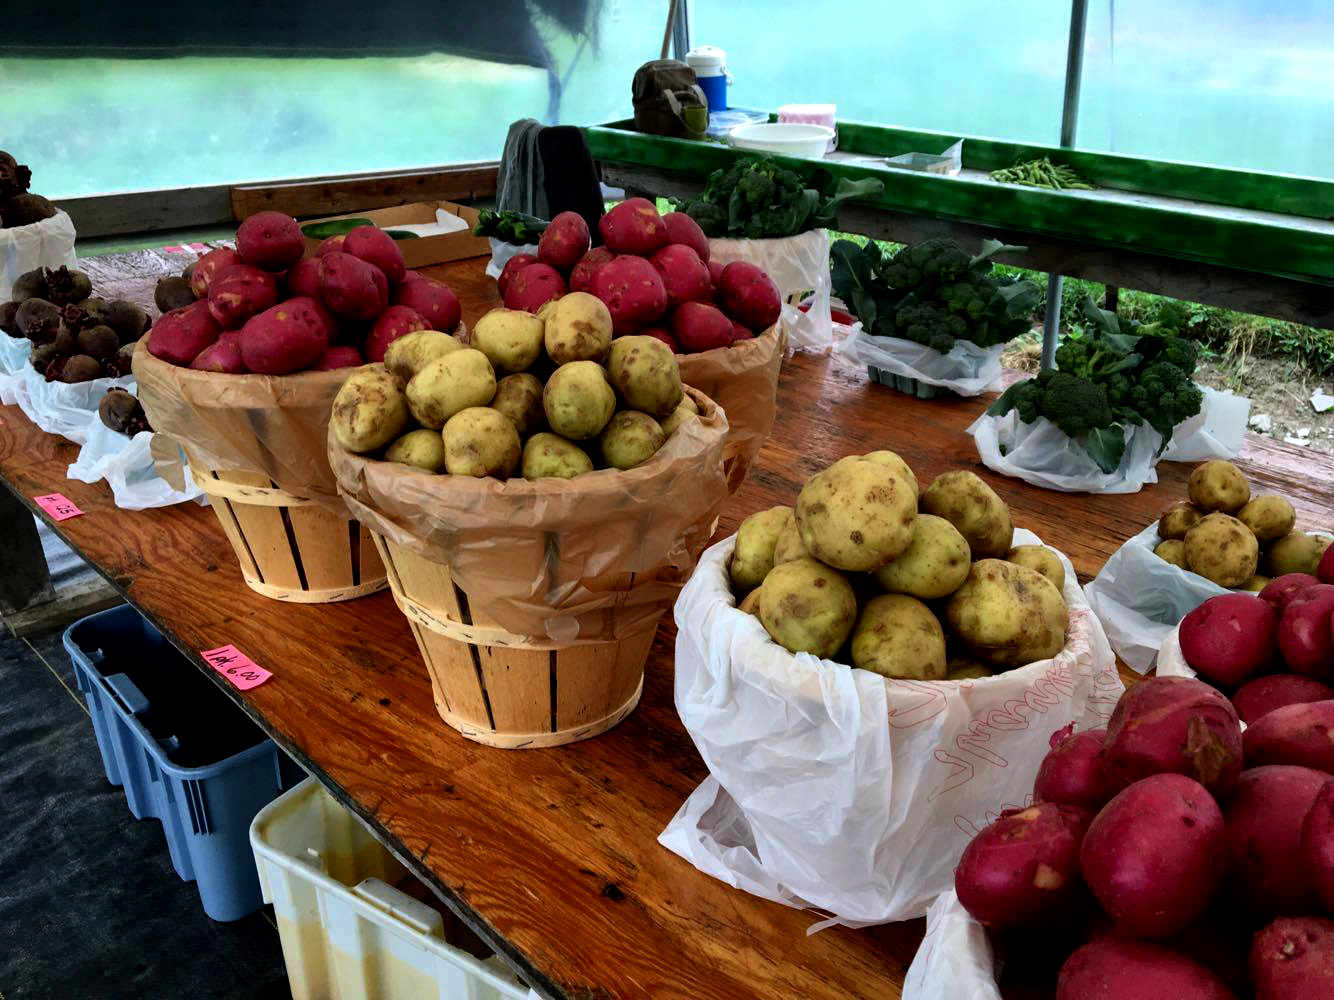 It's fruit and vegetable season! - Take advantage of it, and buy local!